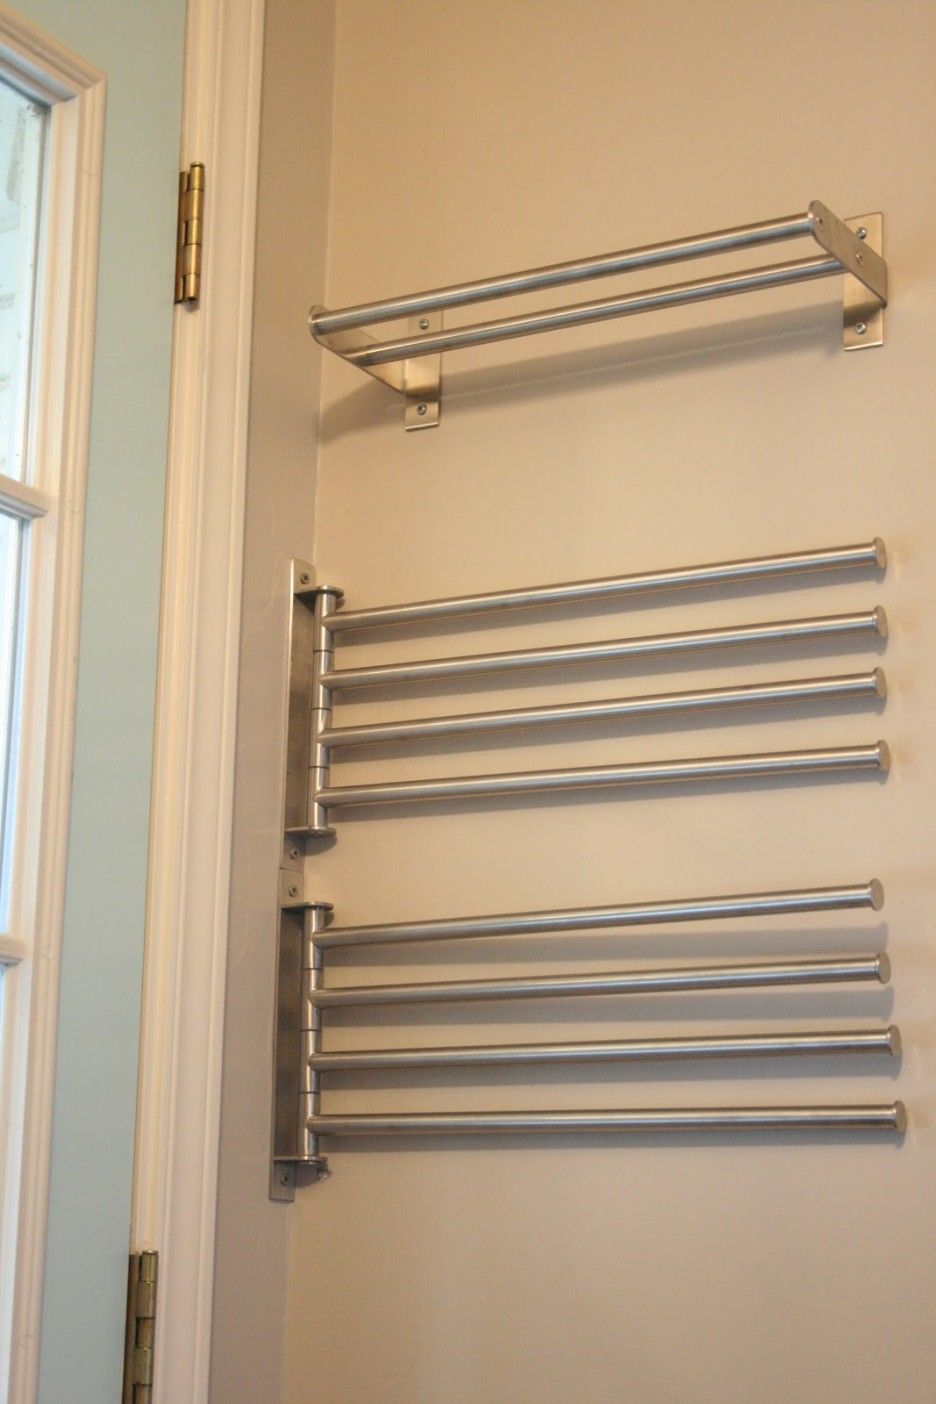 Awesome Laundry Room Clothes Hanger Design Inspiration Adorable New Drying System With Portable Rack In Chrome And Dryer